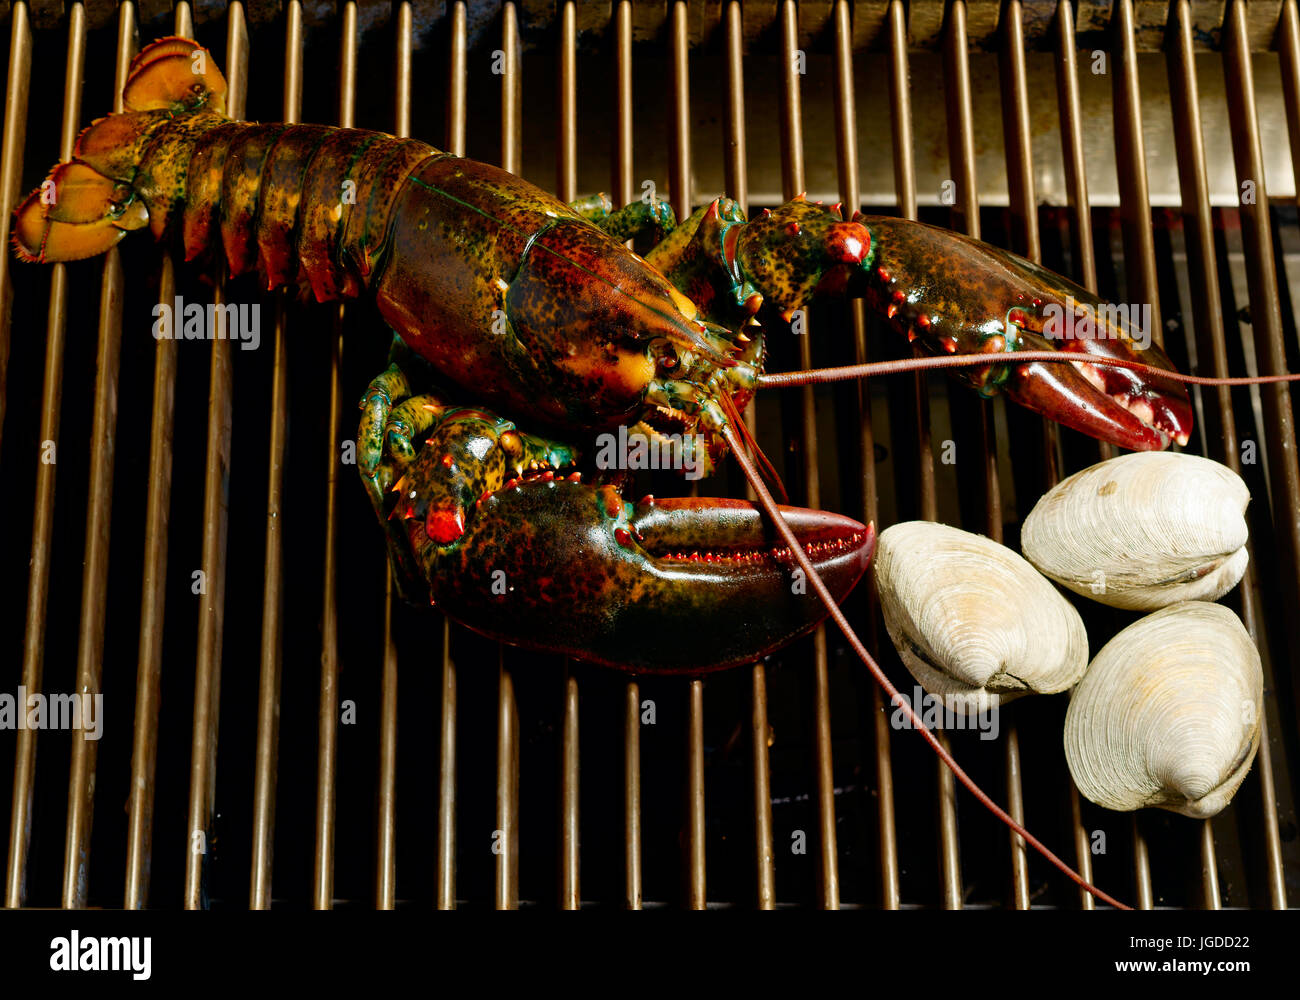 Lobster and clam bake Stock Photo